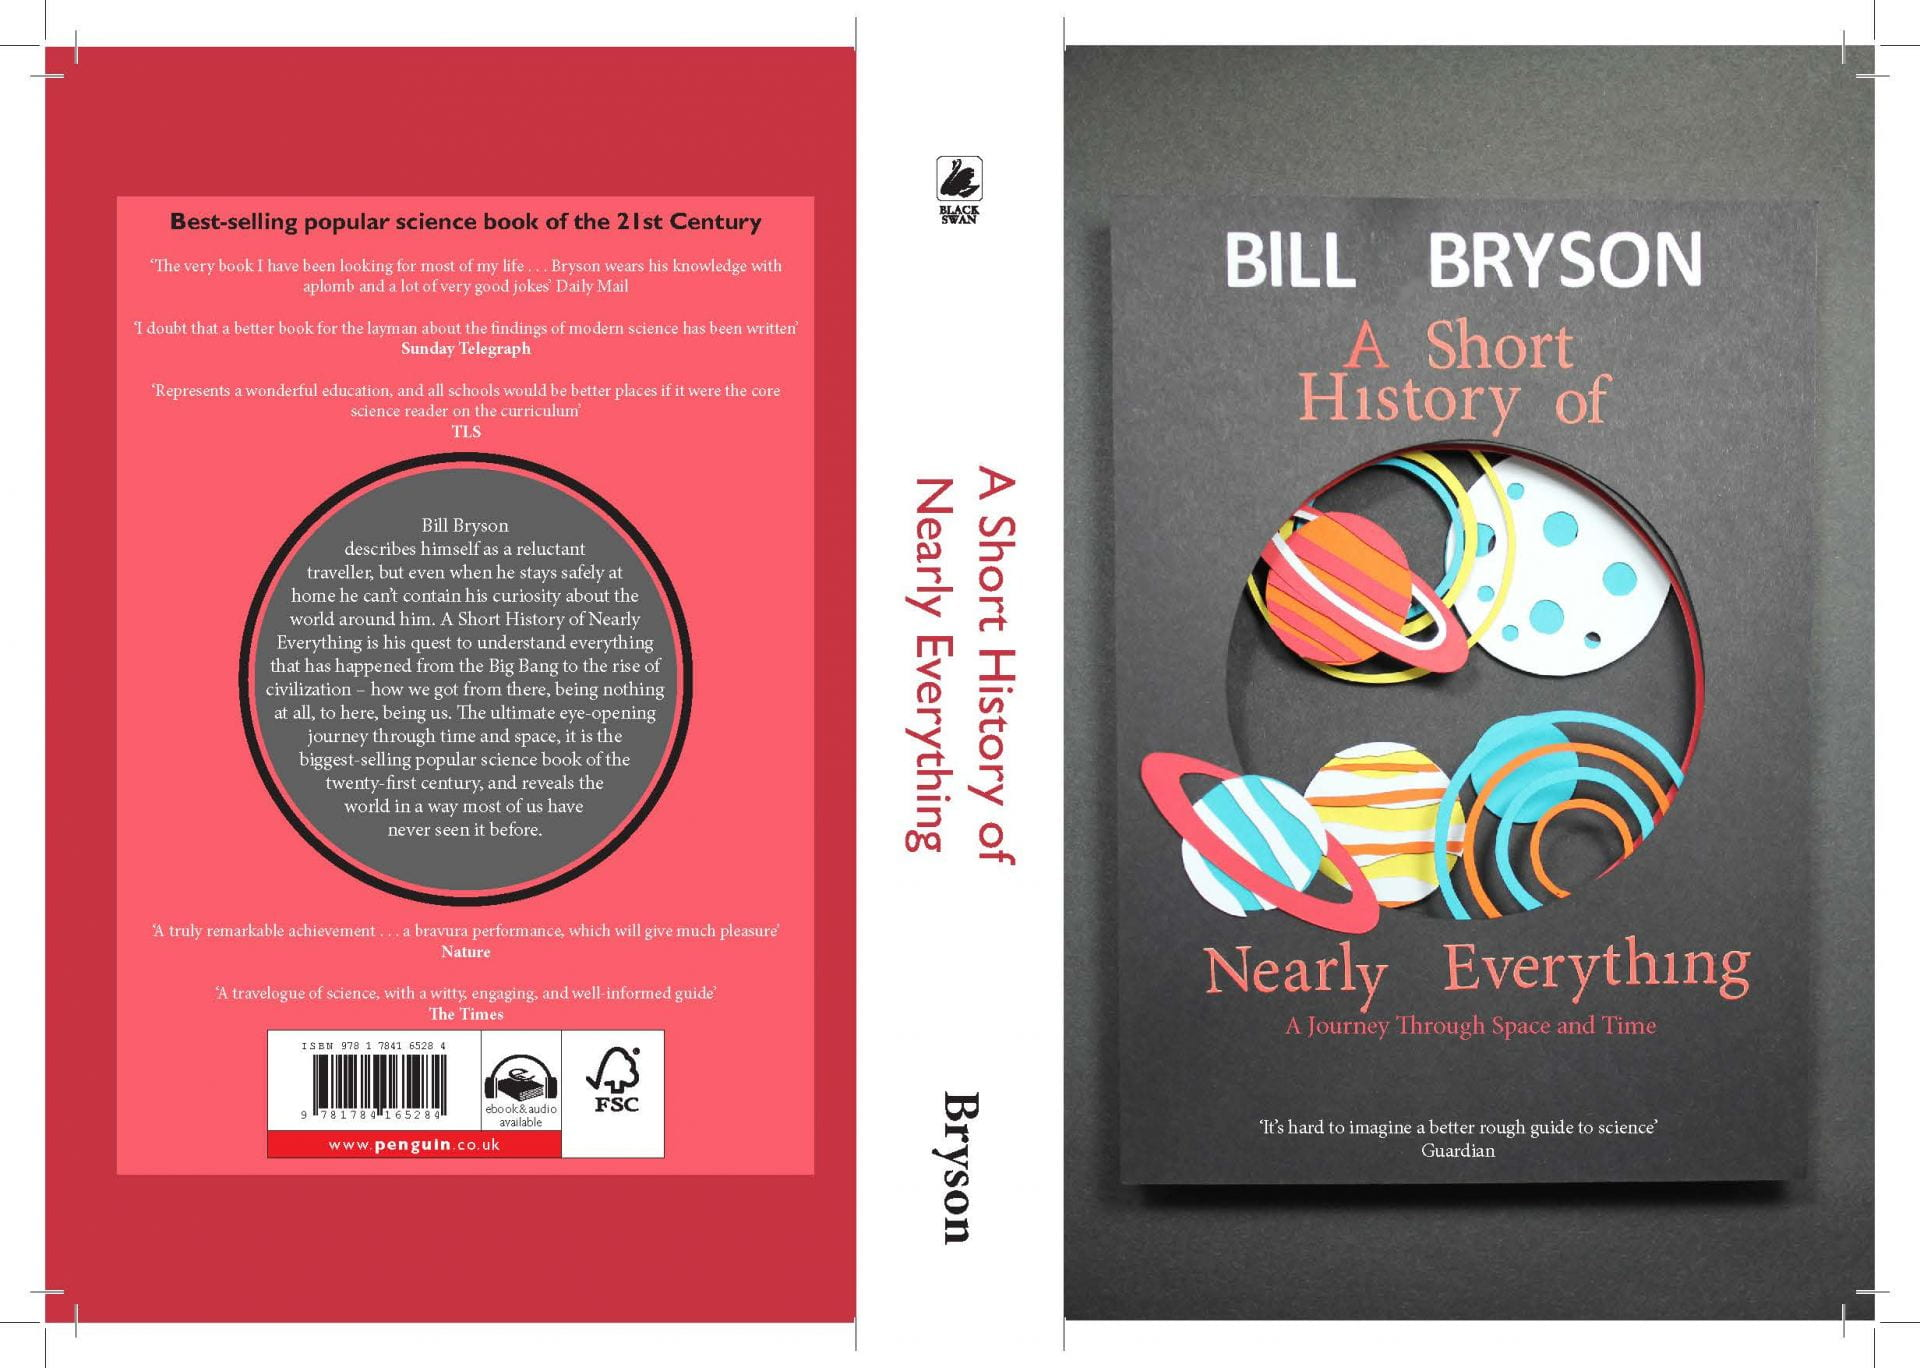 3D book cover with overlapping planets on Bill Bryson's 'A short history of nearly everything' and back blurb.